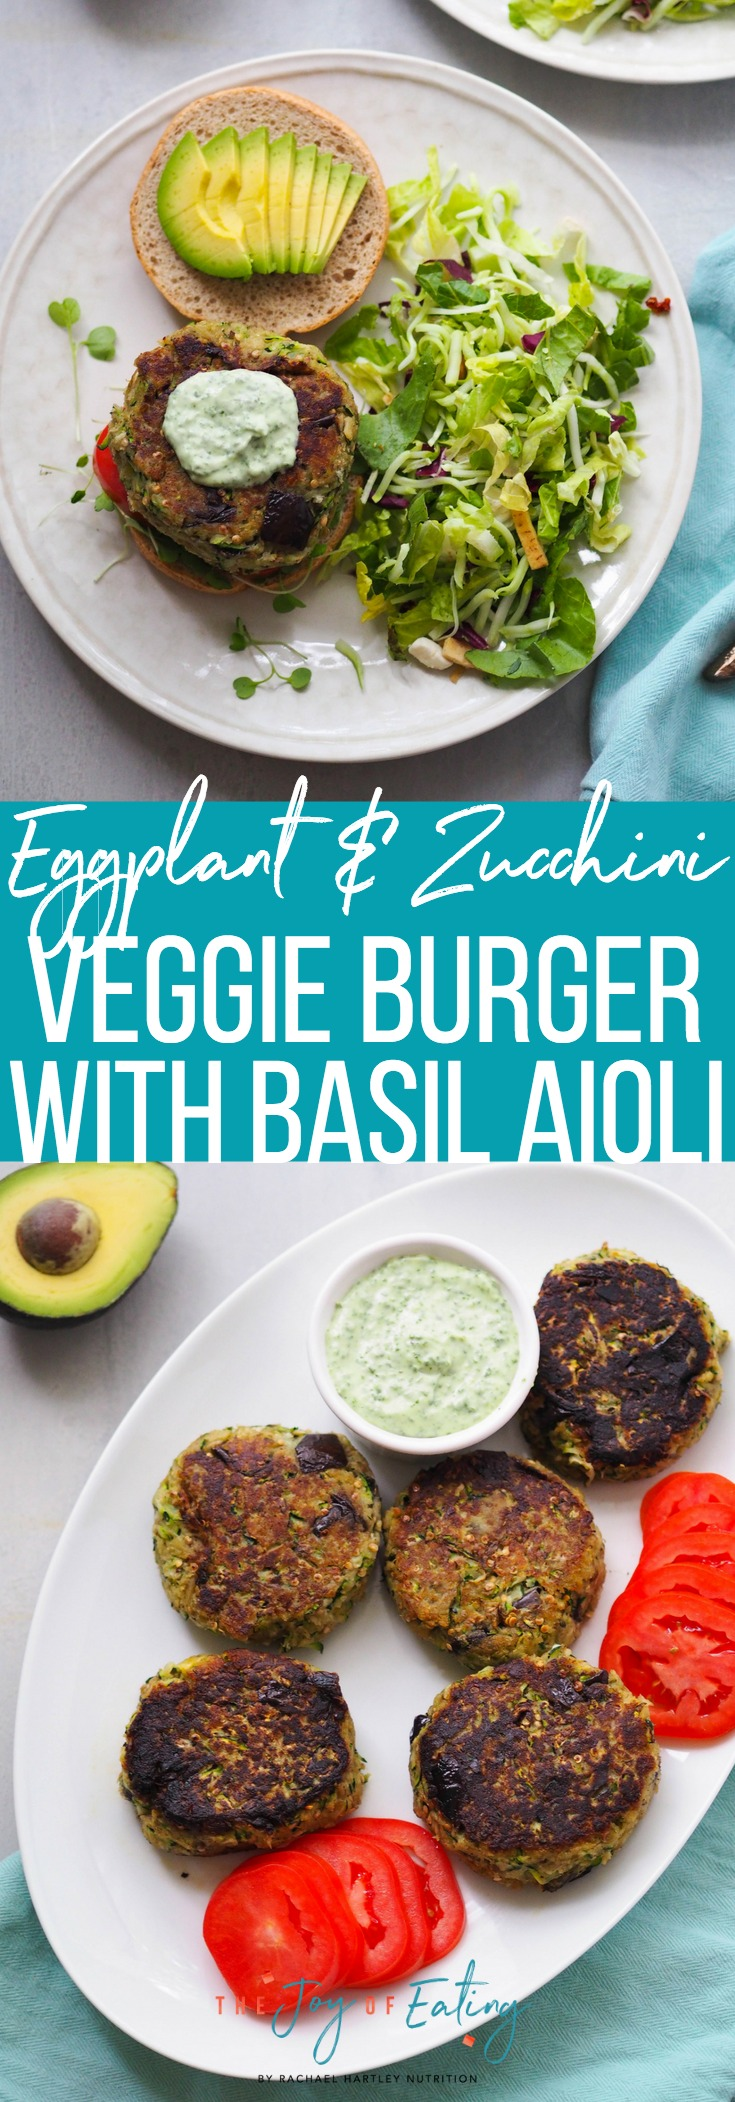 This eggplant zucchini veggie burger with basil aioli is the perfect veggie burger for summer! #veggieburger #eggplant #zucchini #vegetarian